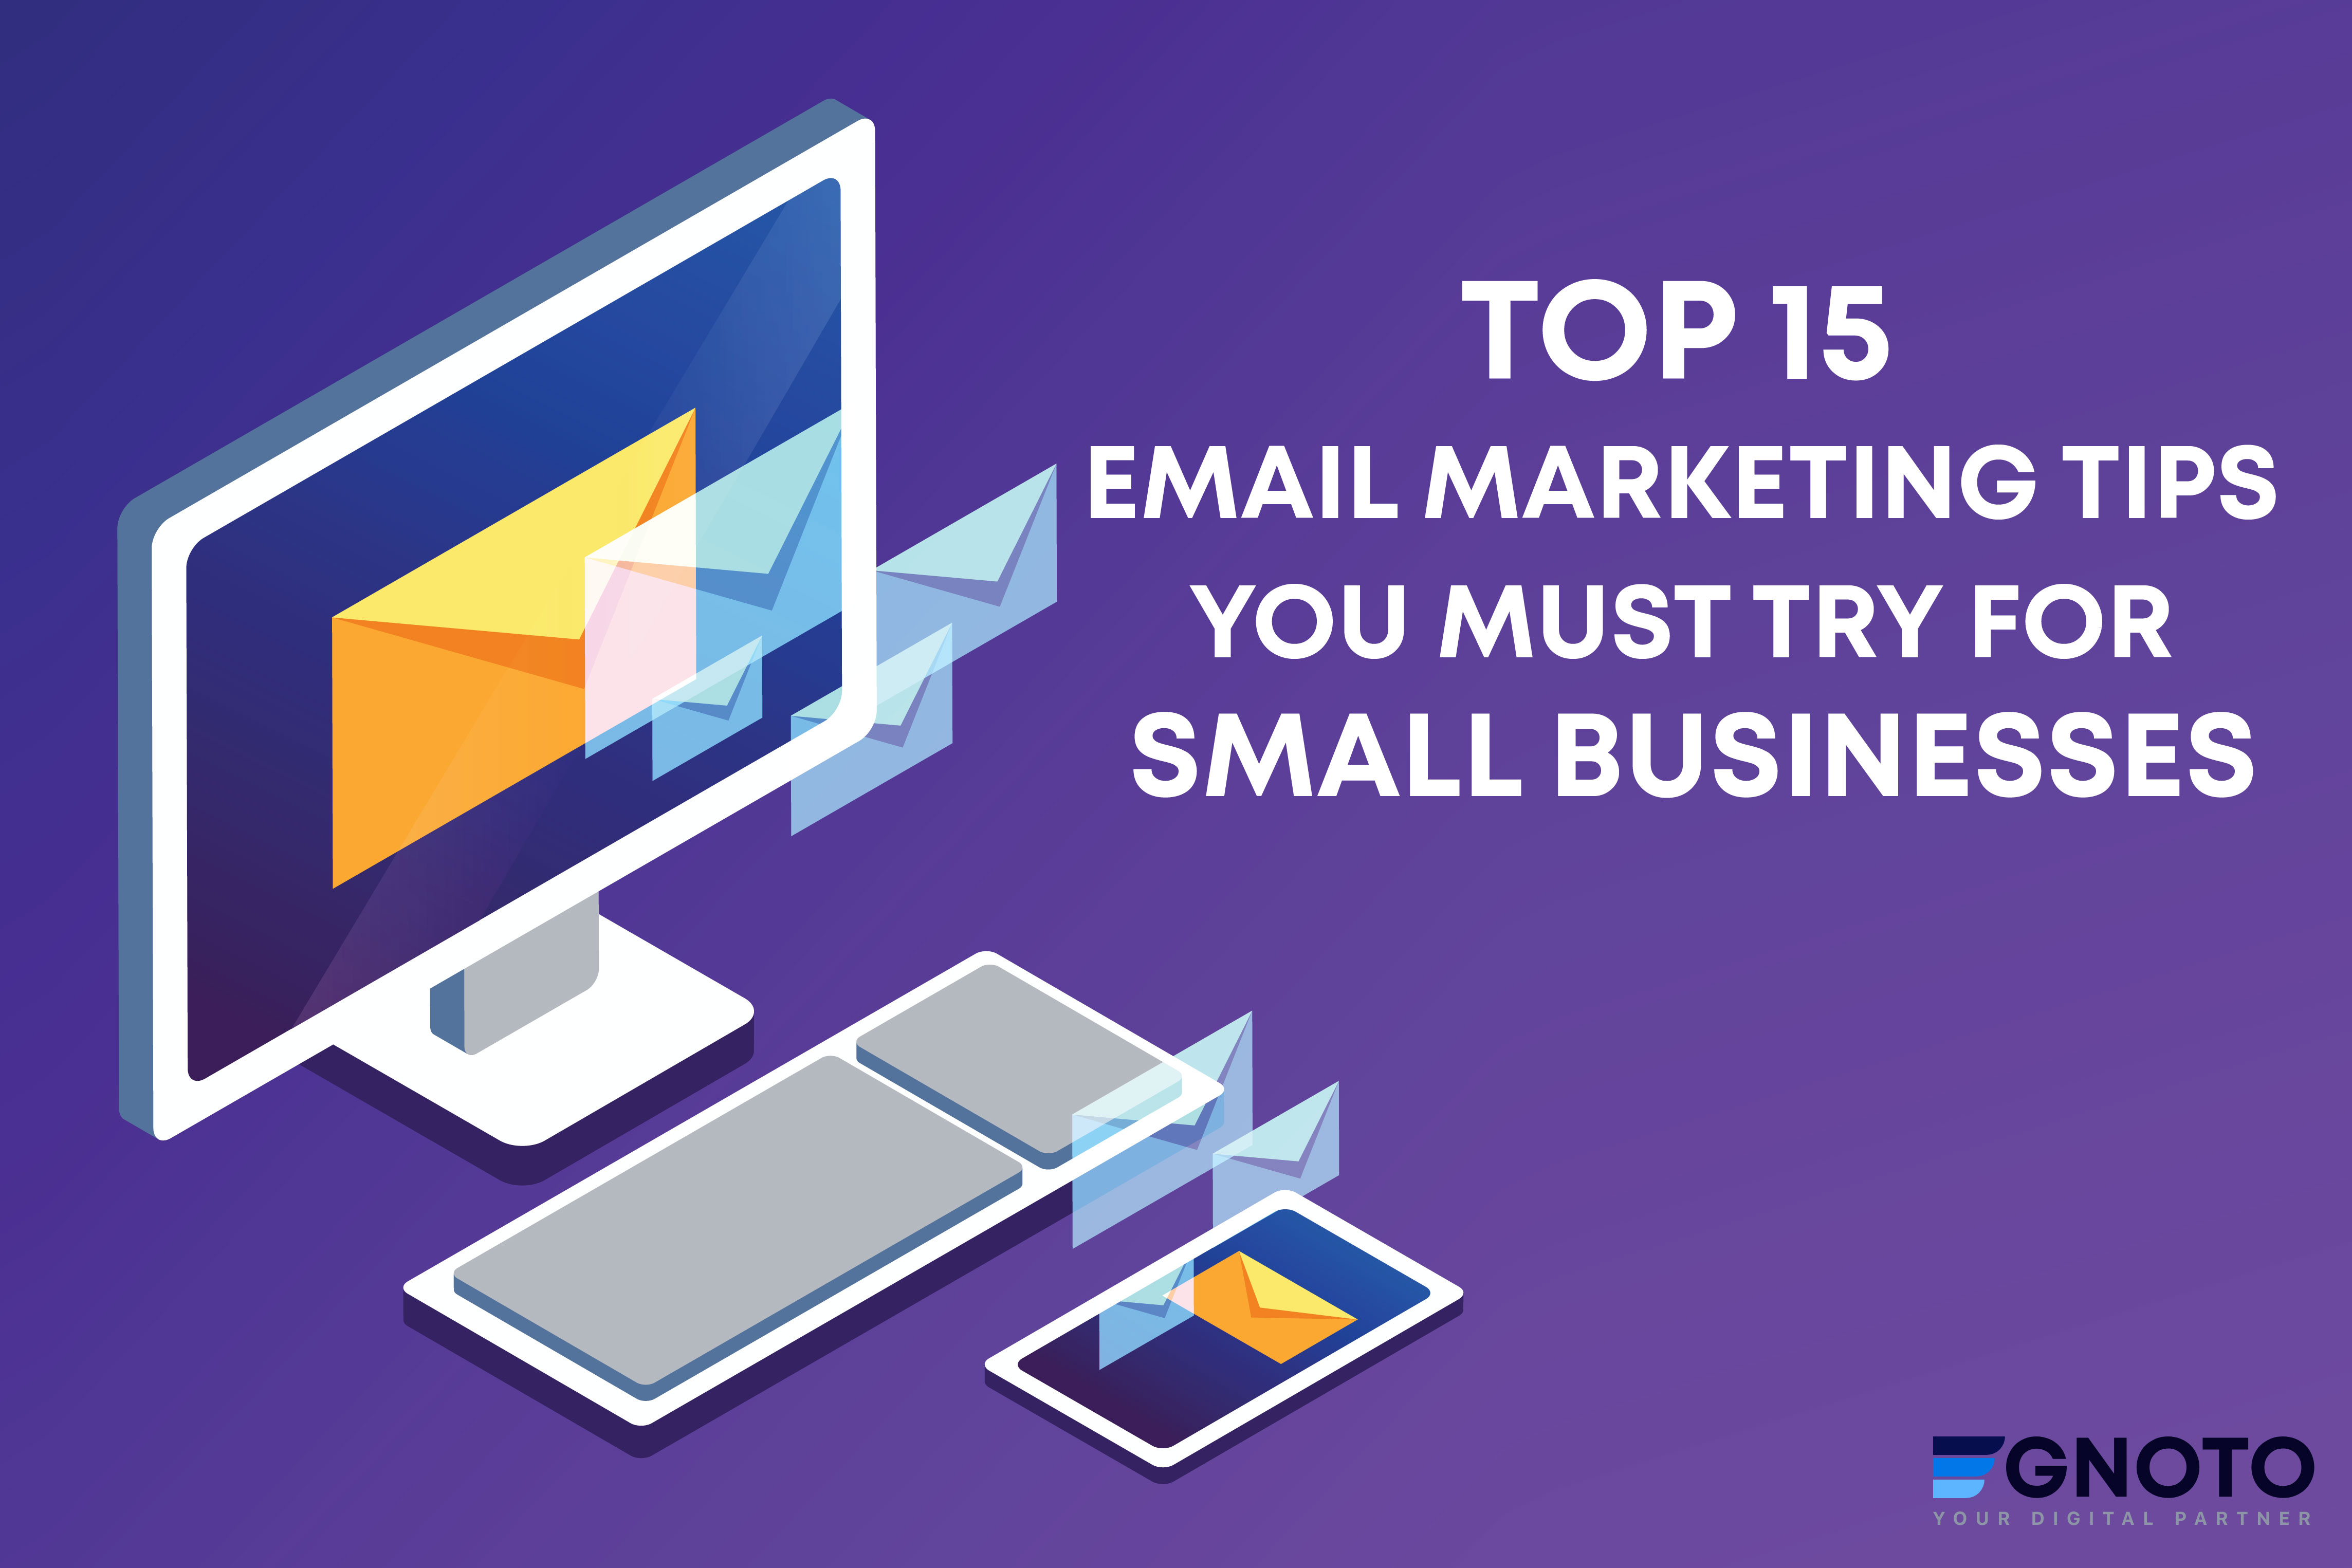 Top 15 Email Marketing Tips You Must Try for Small Businesses